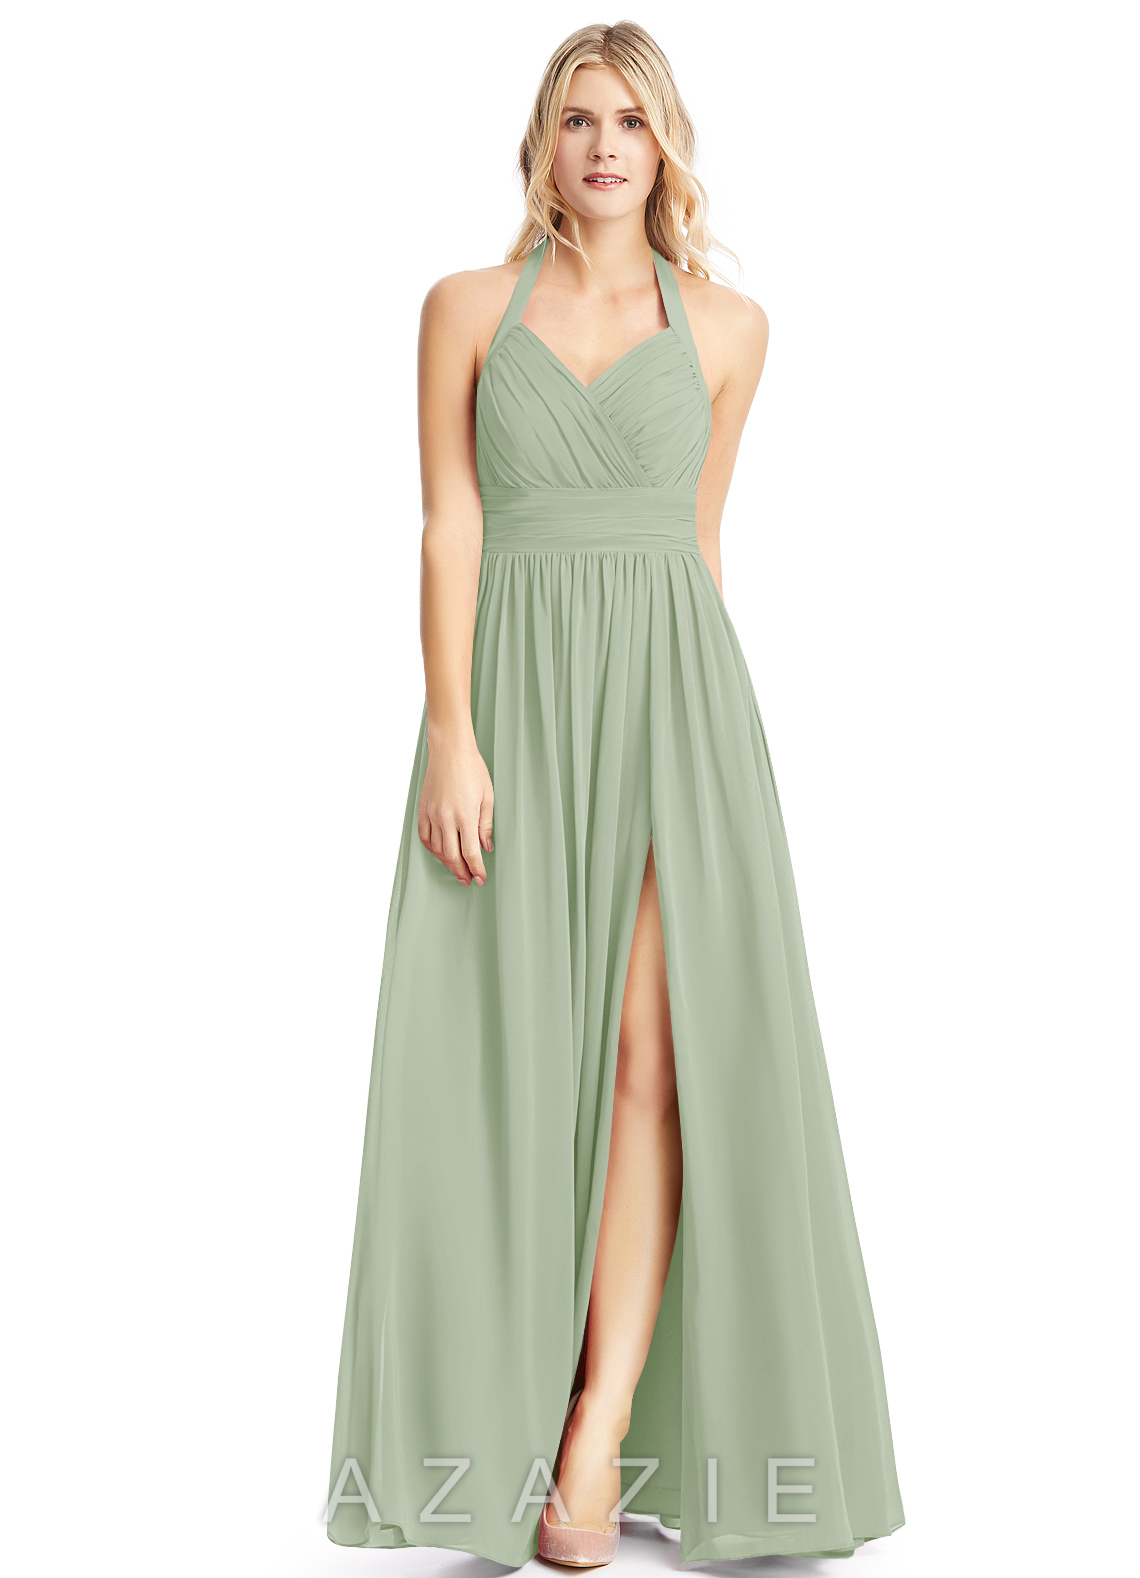 083dababfe Sage Bridesmaid Dresses Short - Gomes Weine AG